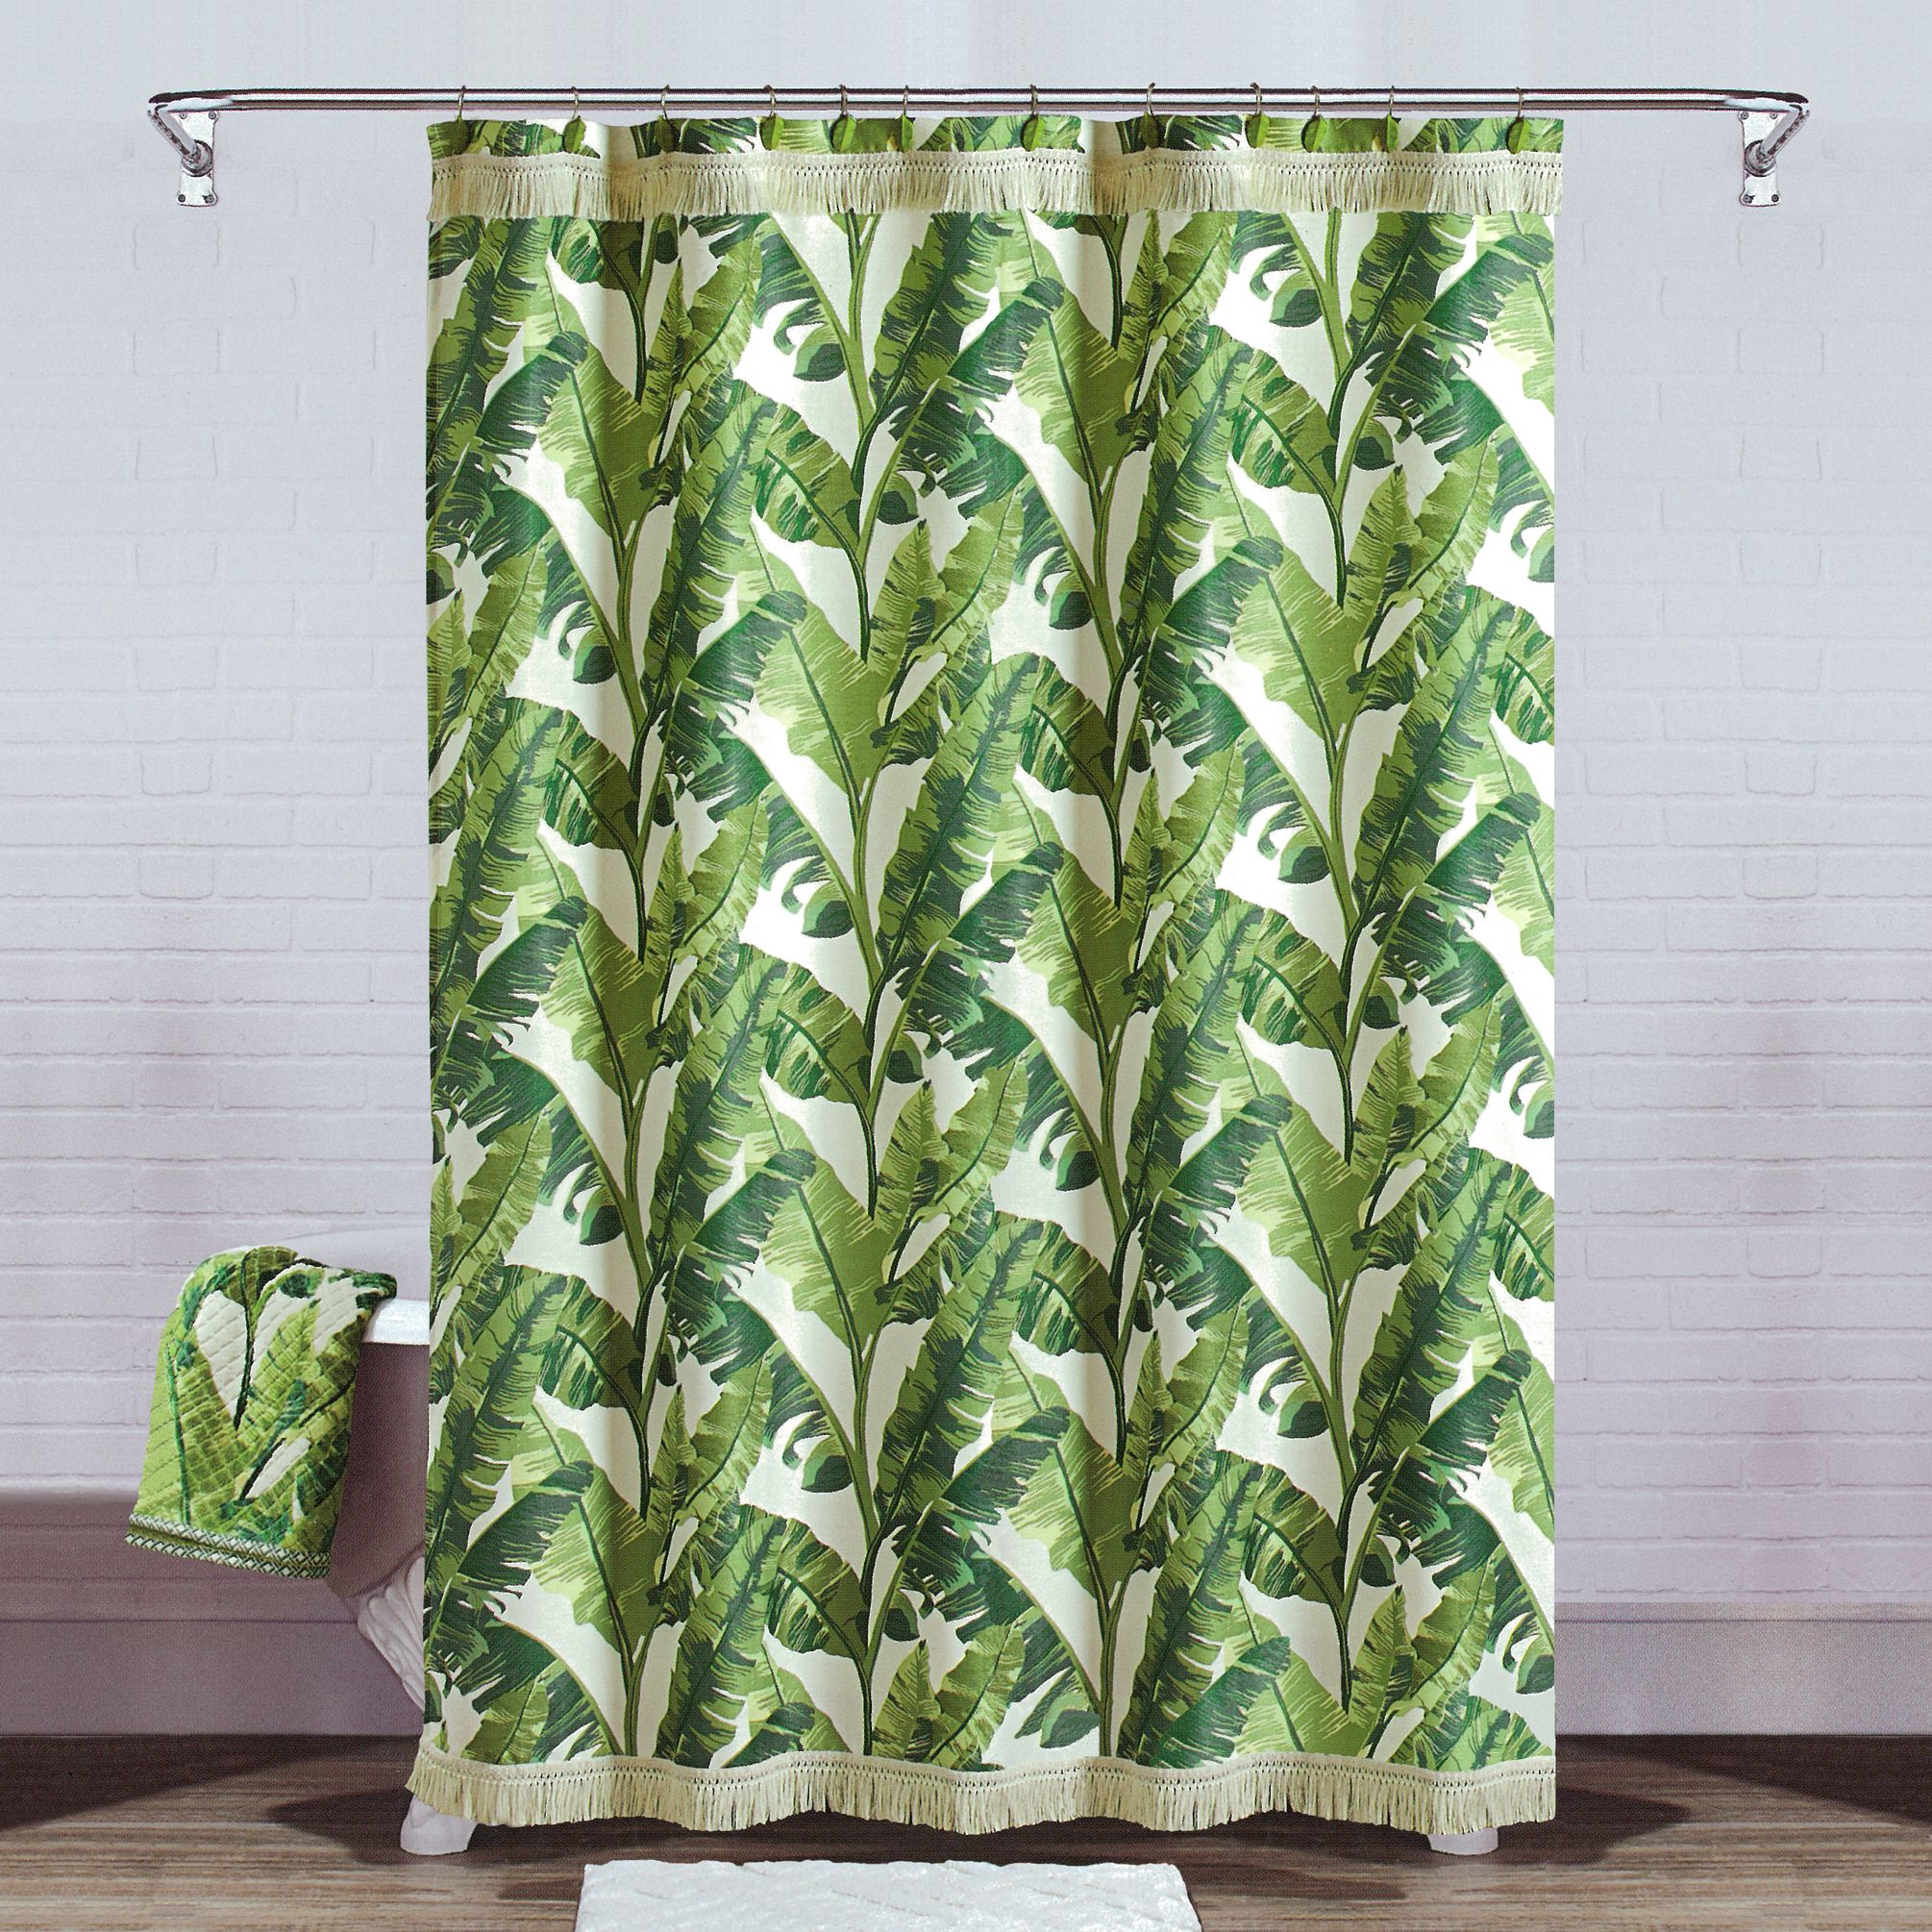 Better Homes & Gardens Tropical Leaves Shower Curtain